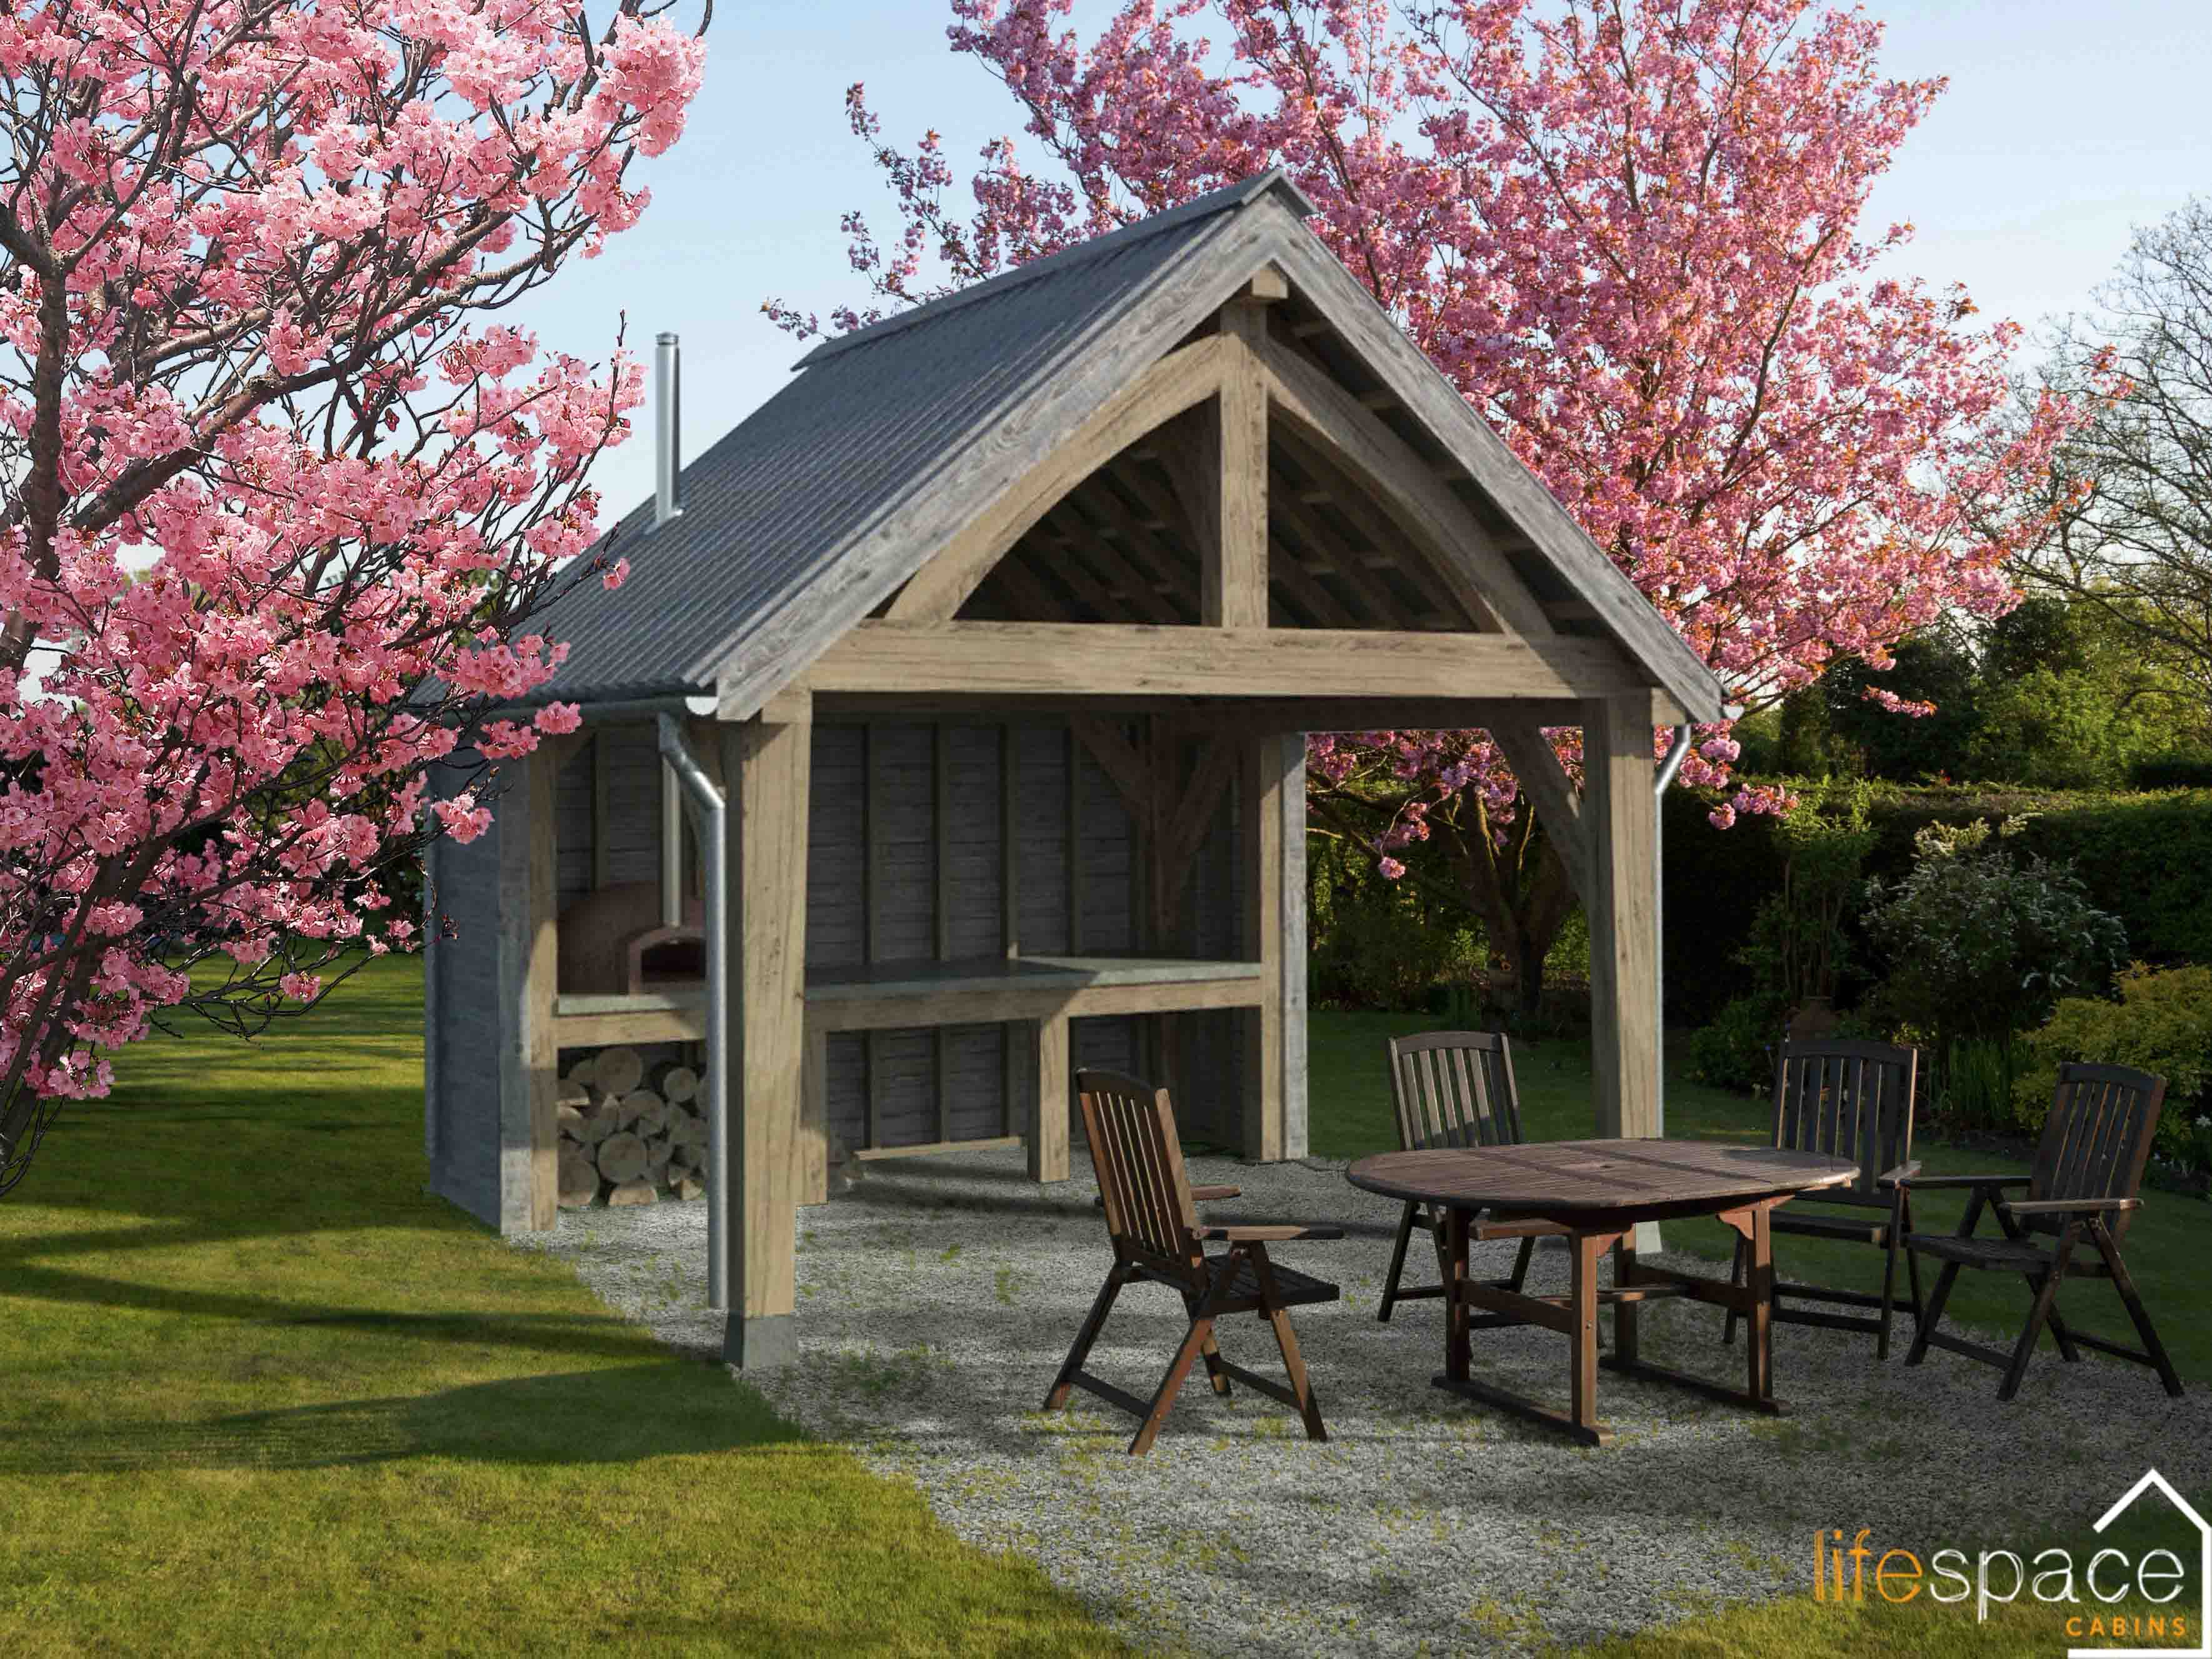 Alfresco Dining oak frame outdoor eating area in spring |Life Space Cabins